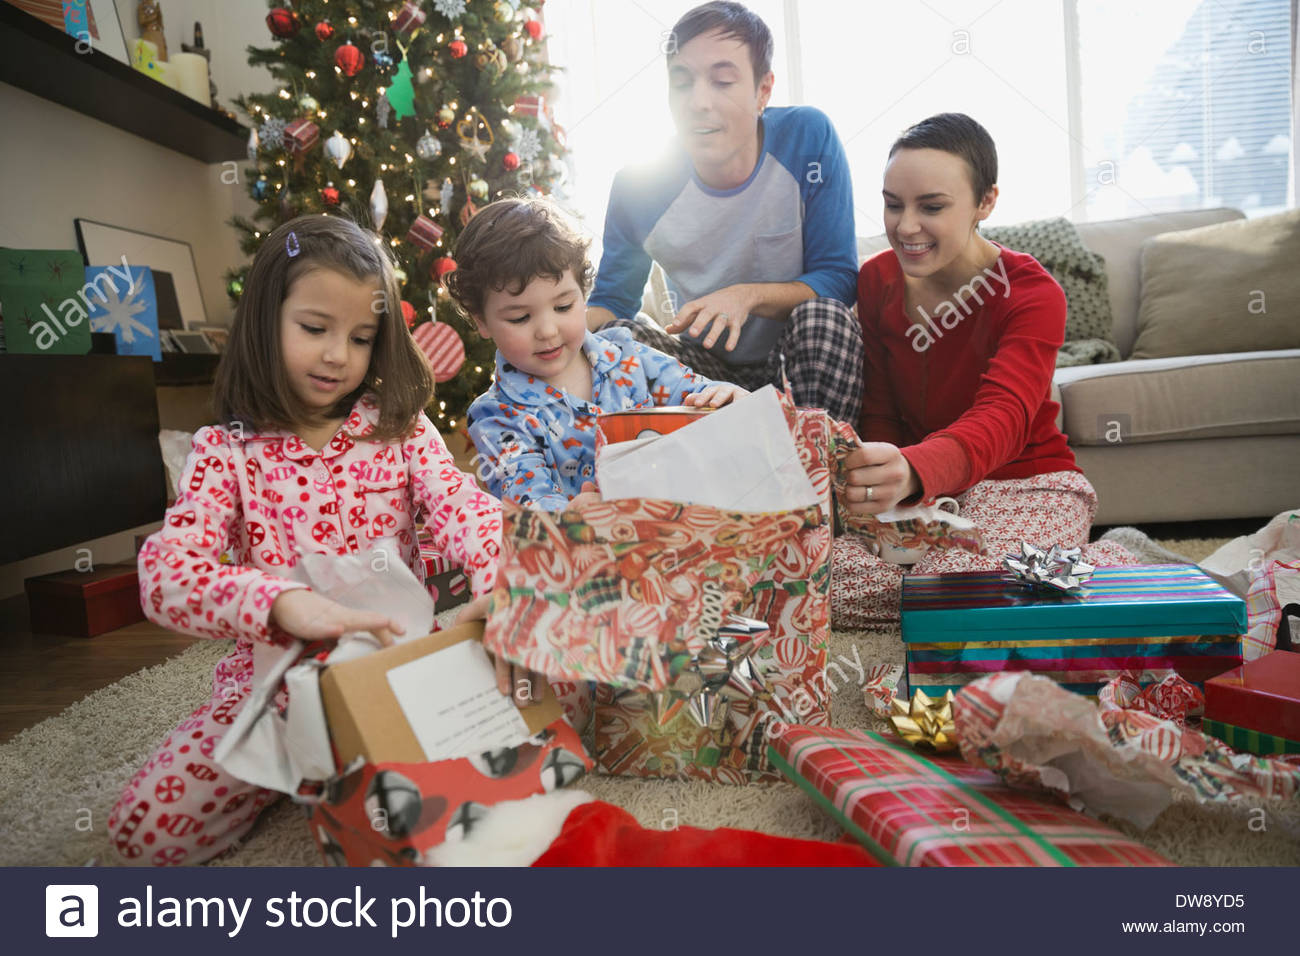 Christmas Gifts For Parents.Parents Watching Children Opening Christmas Gifts Stock